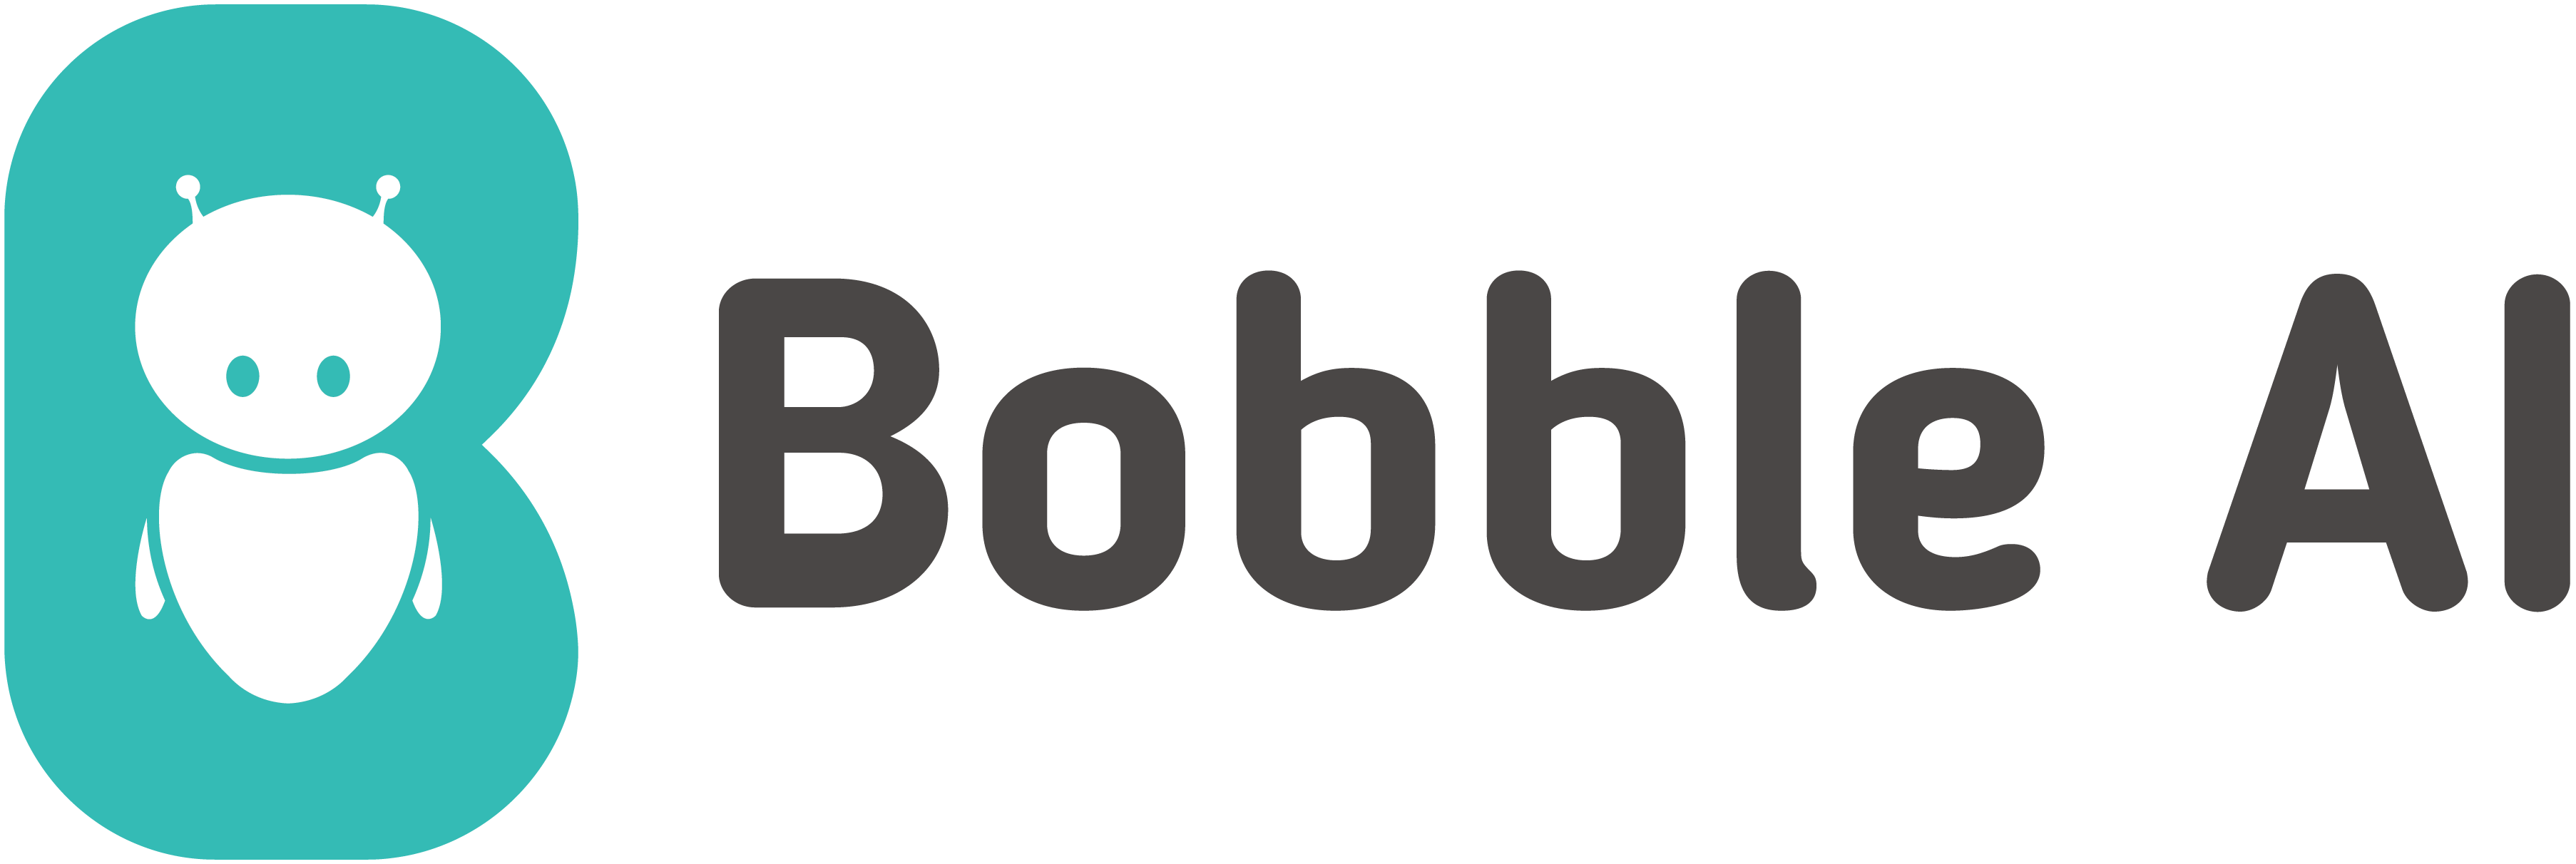 bobble-logo